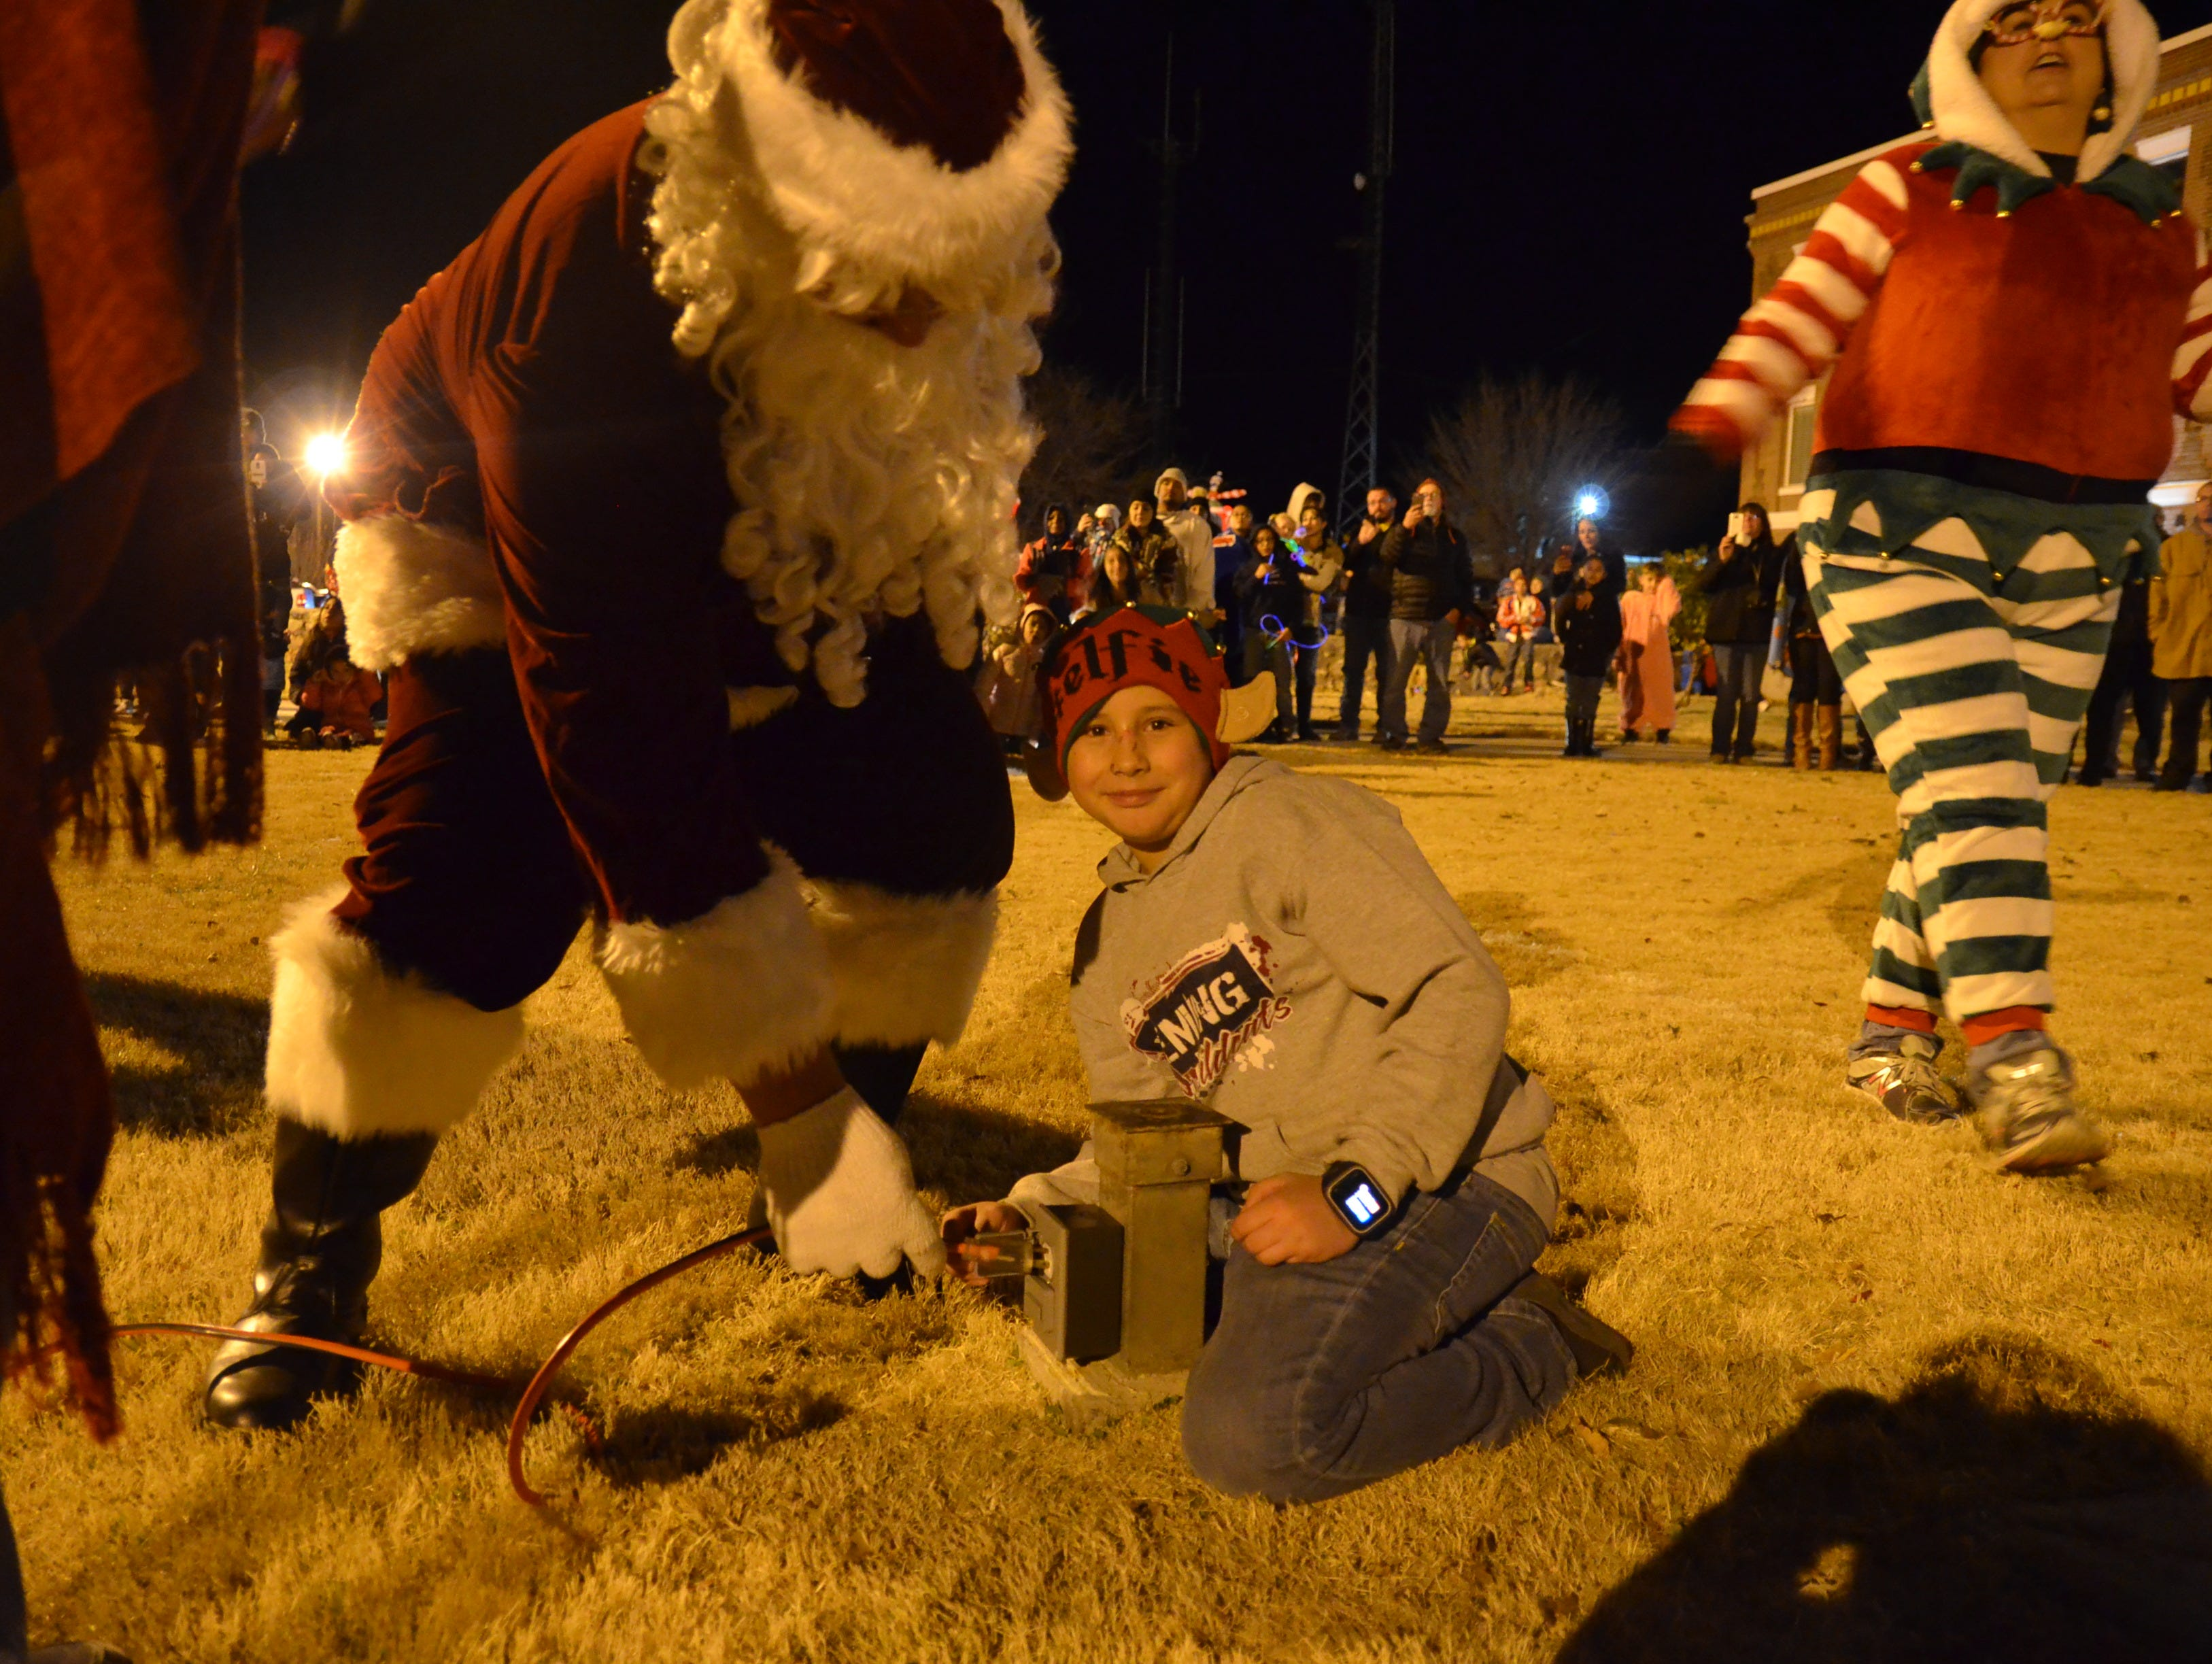 Santa Claus doing the honors of plugging in the cord to light up the Luna County Christmas tree.